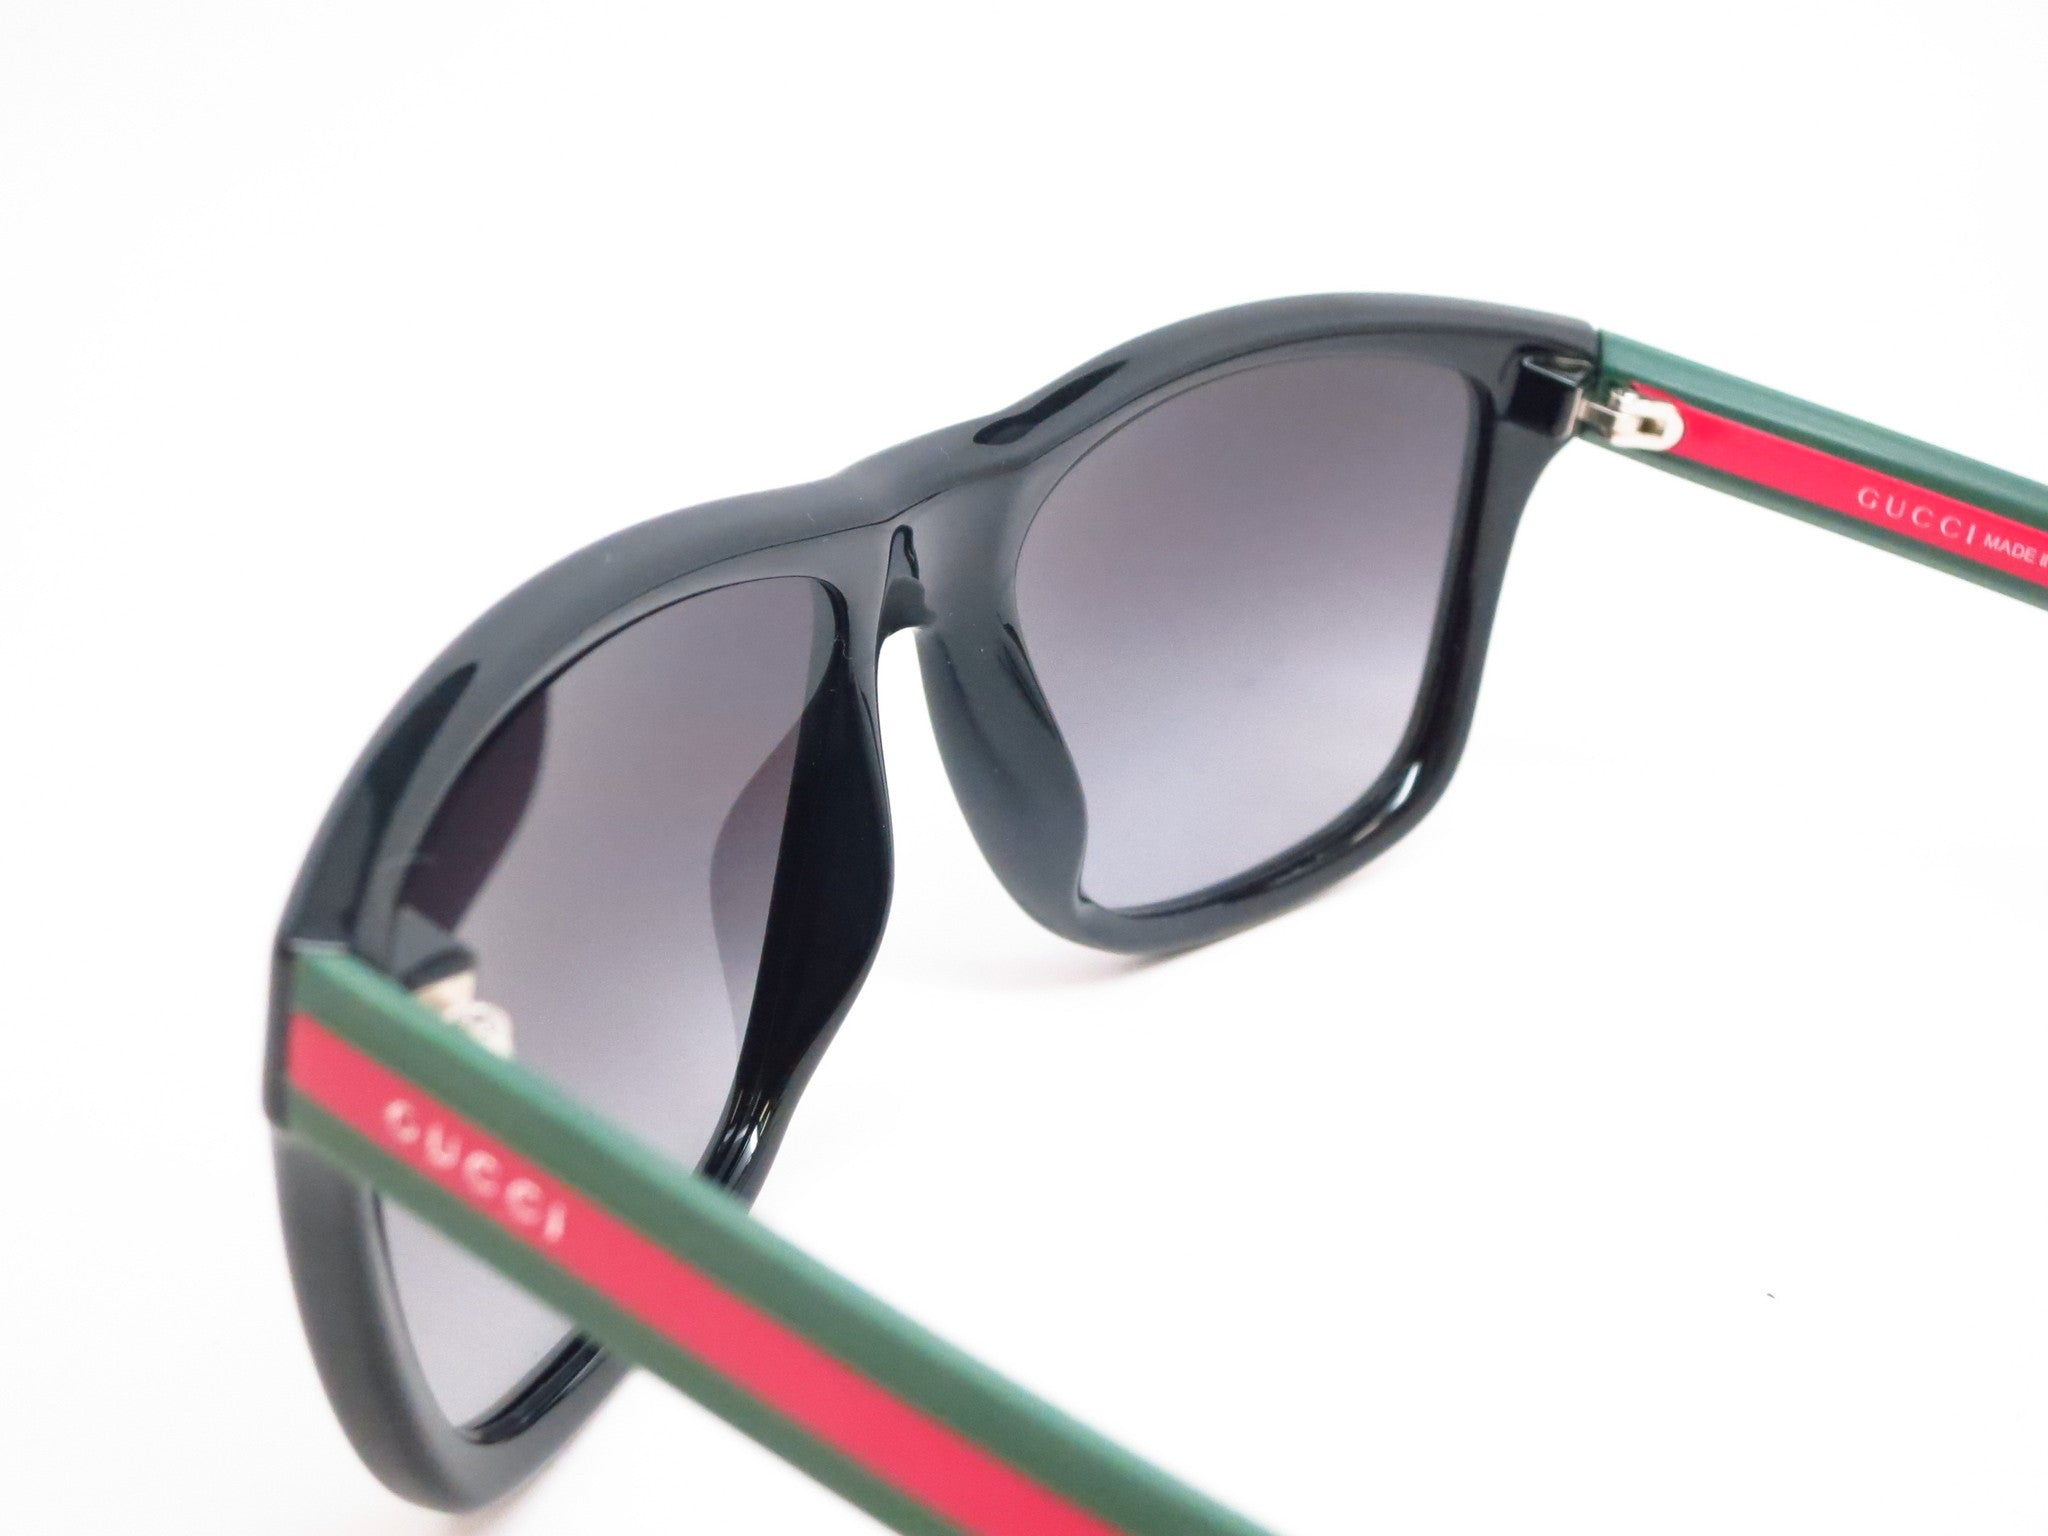 3ba404dc1340e ... Gucci GG 1118 51N 90 Black Green Red Sunglasses - Eye Heart Shades -  Gucci ...